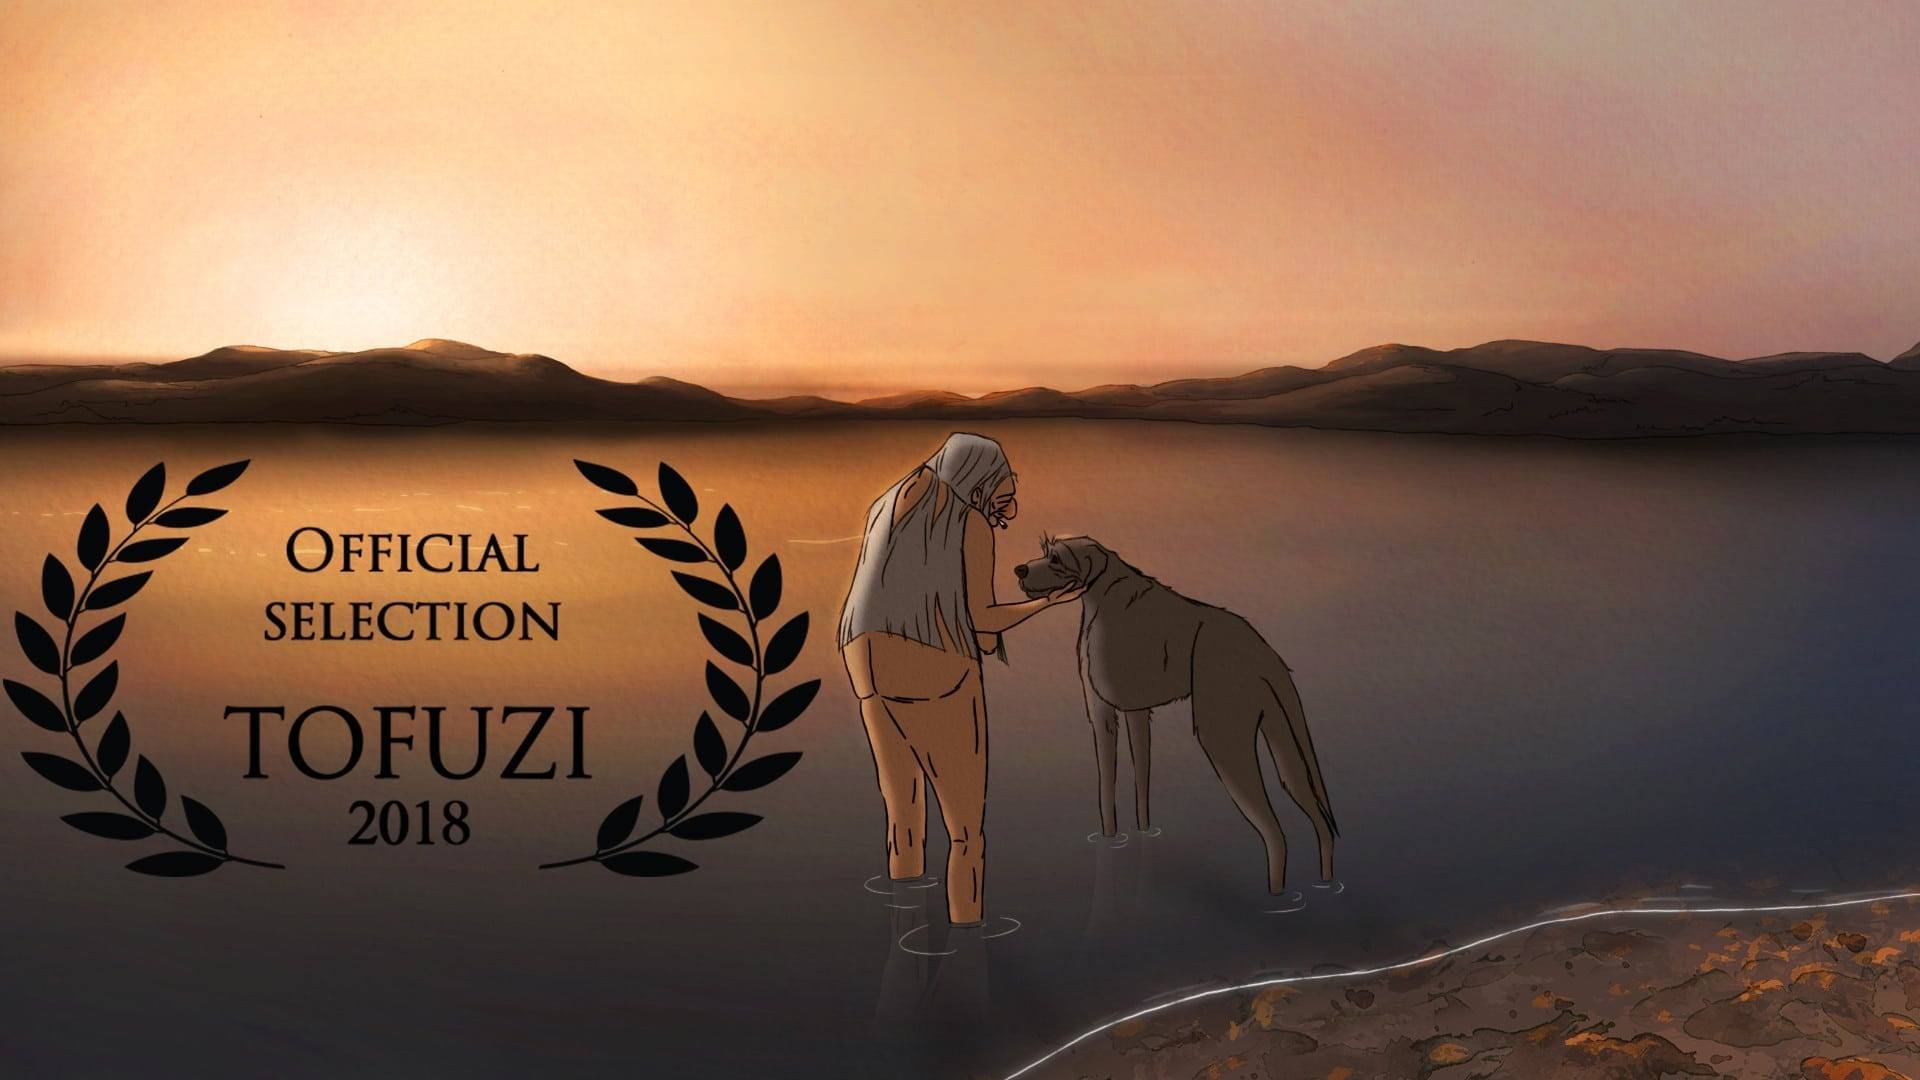 Liv nominated for Best Student Film at TOFUZI